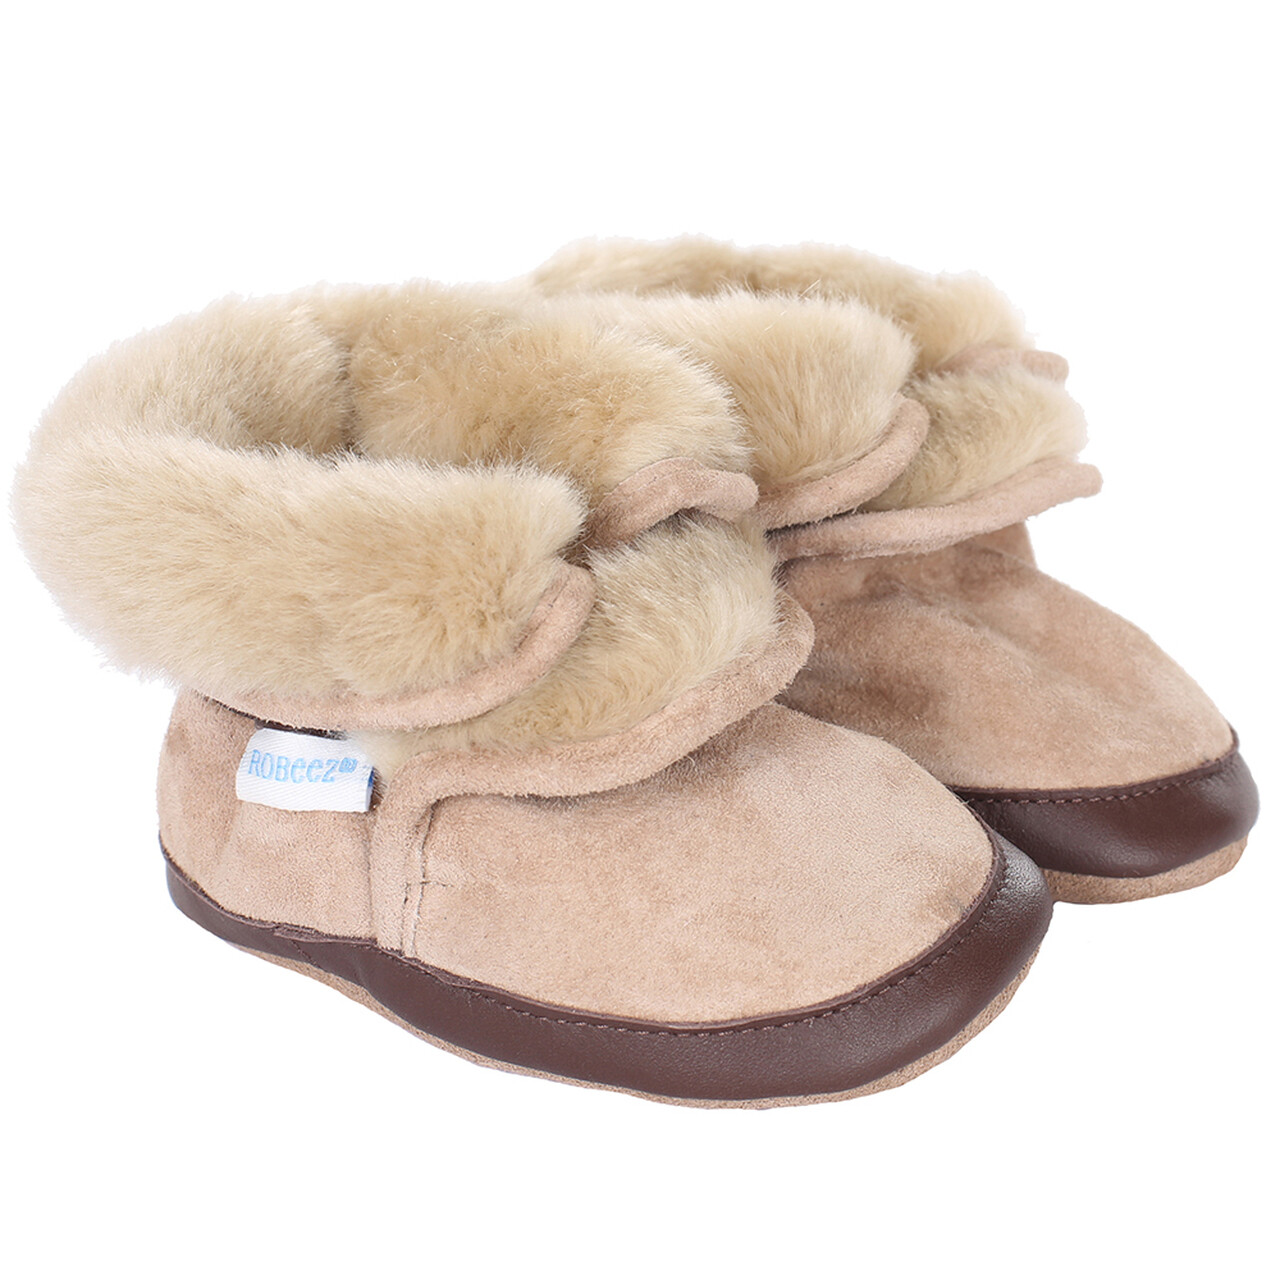 Robeez Cozy ankle bootie taupe 12-18